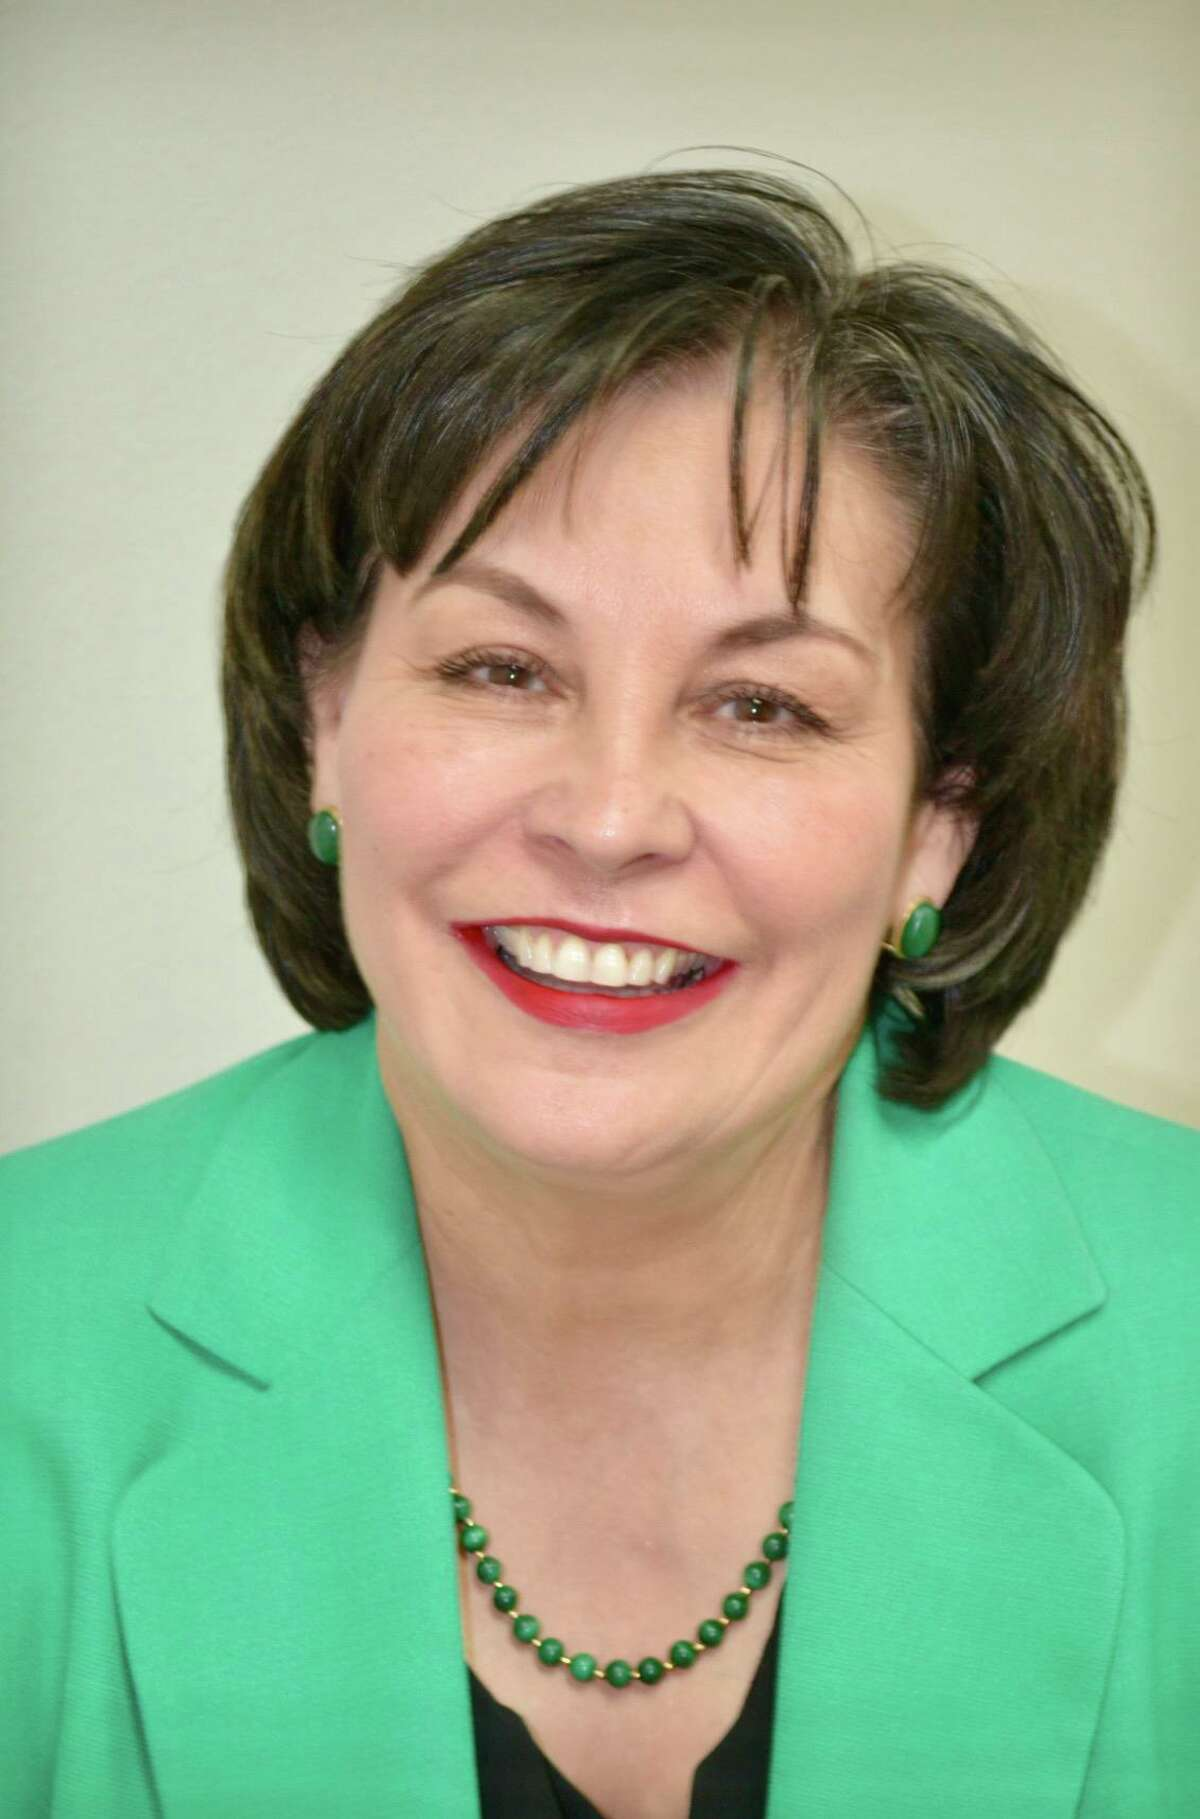 Cynthia Brehm heads the Republican Party of Bexar County.